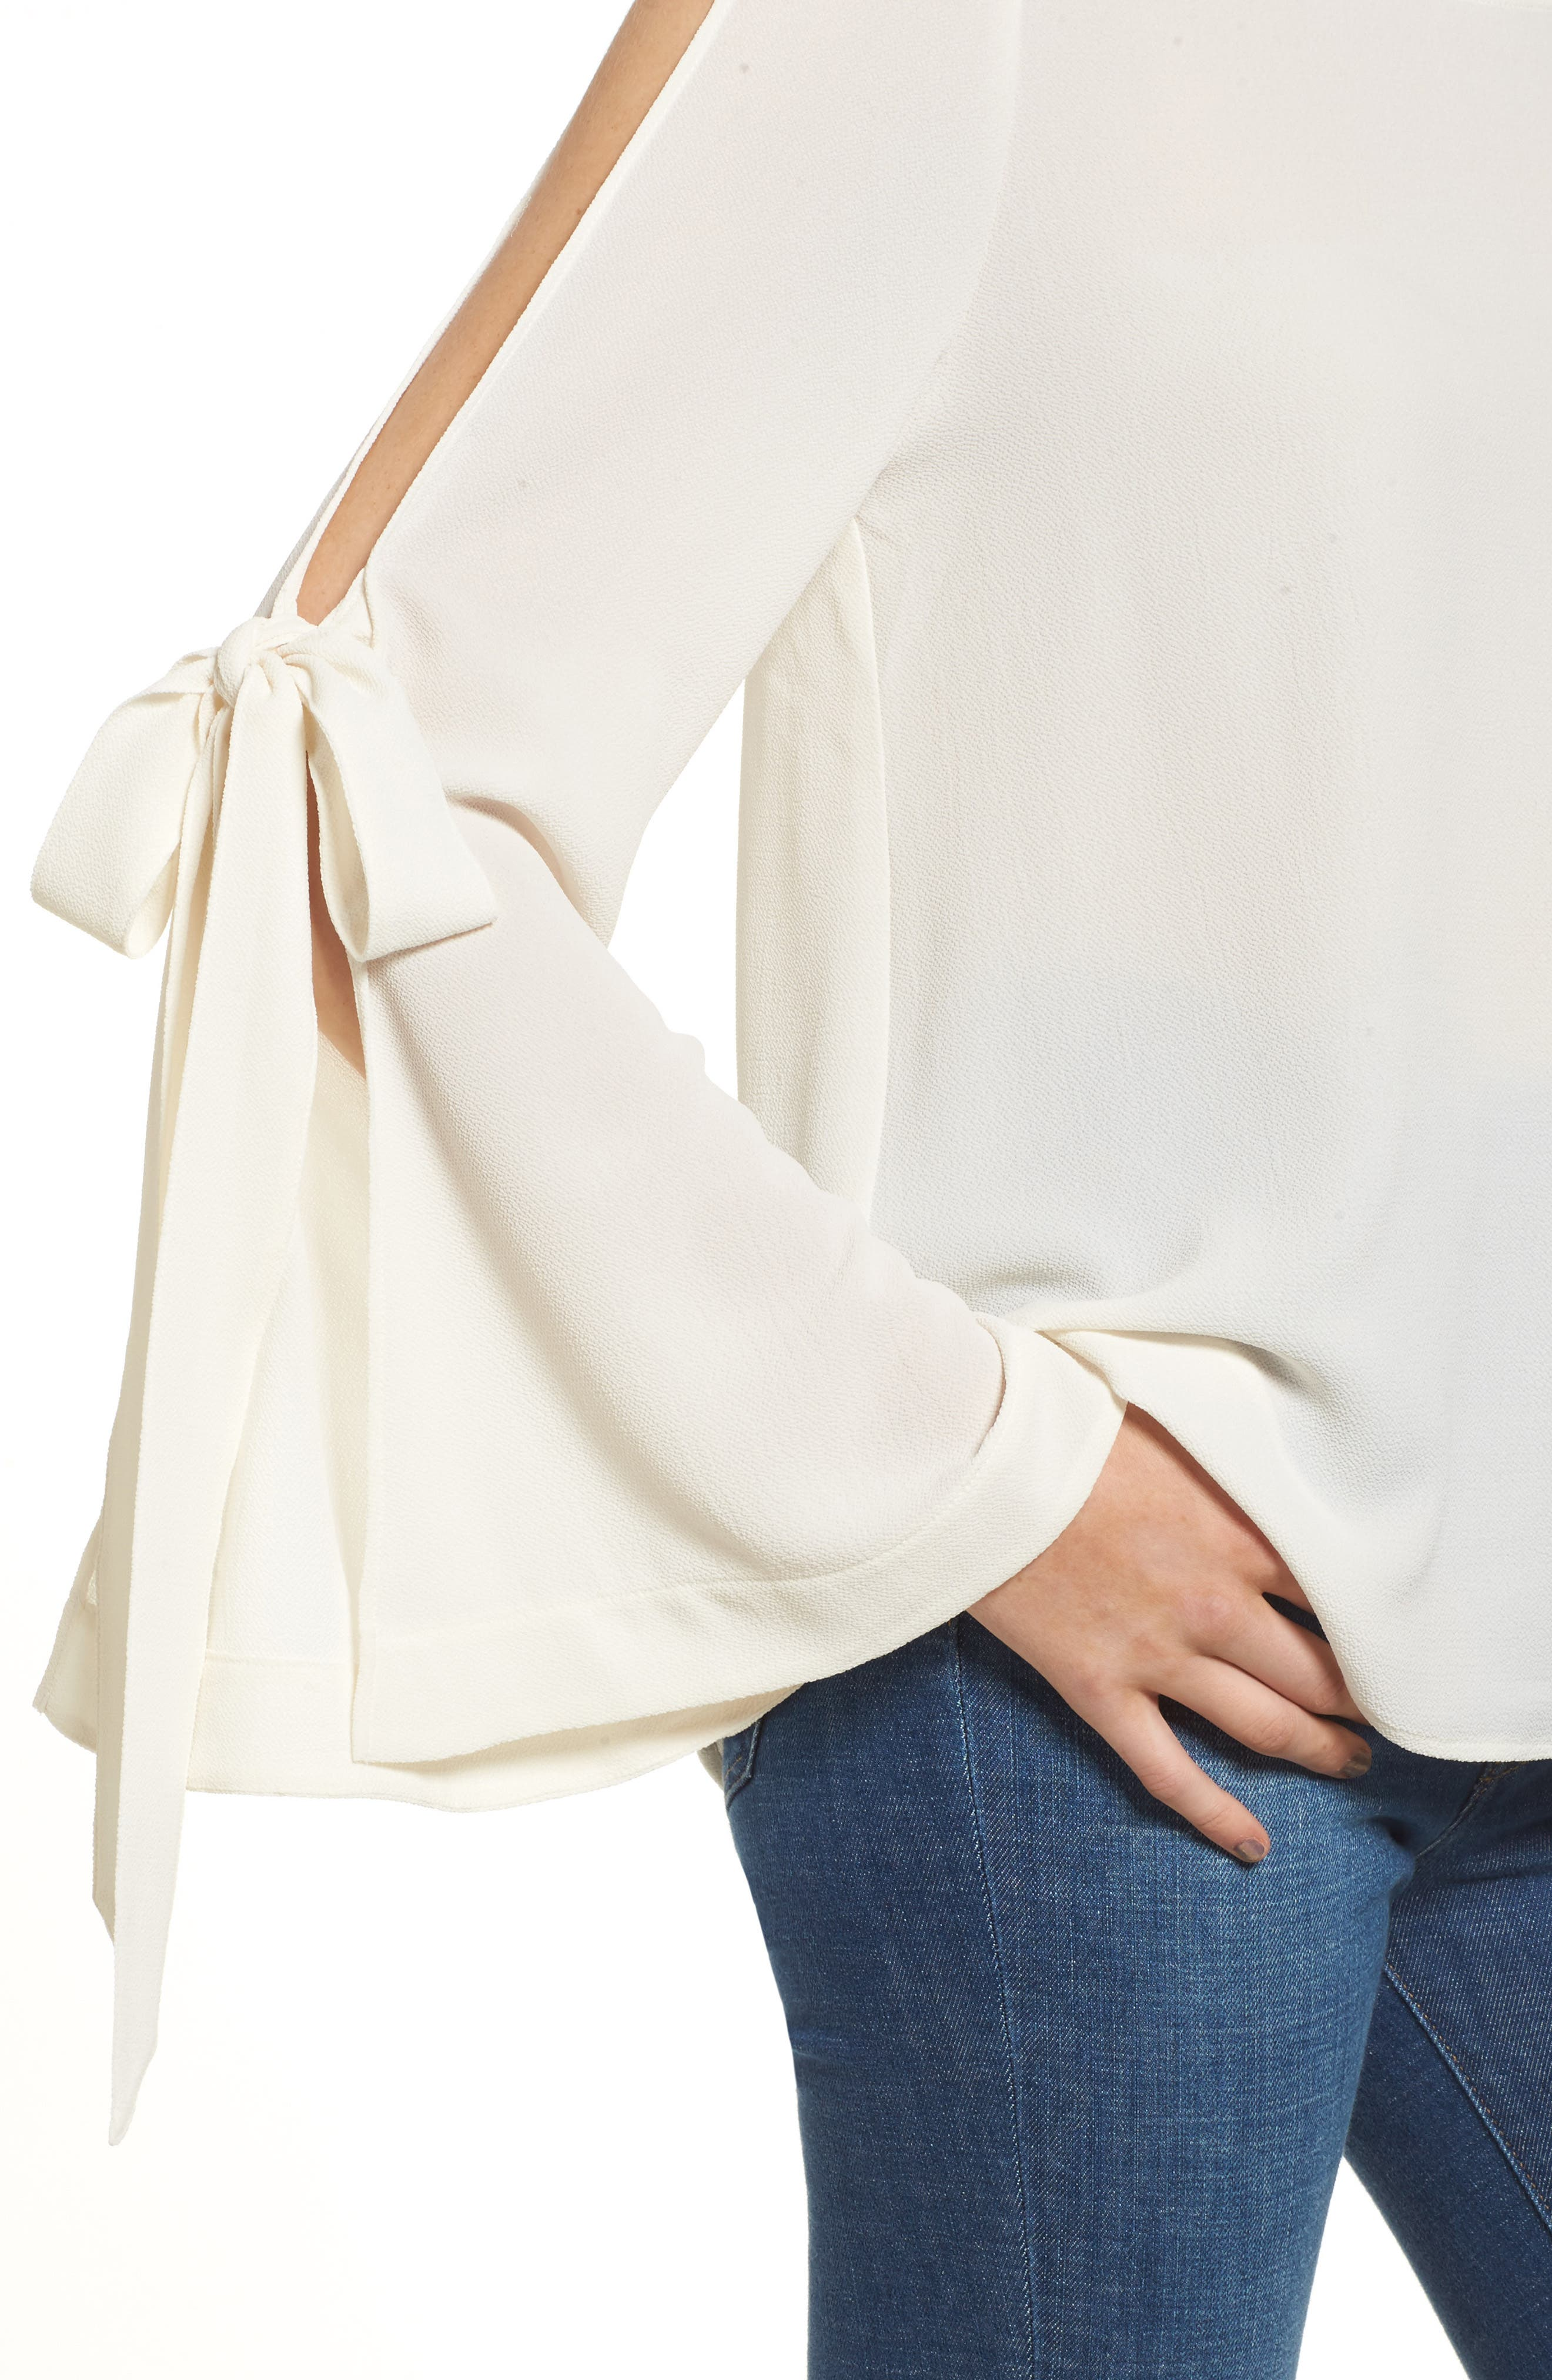 Tie Sleeve Blouse,                             Alternate thumbnail 4, color,                             Ivory Egret